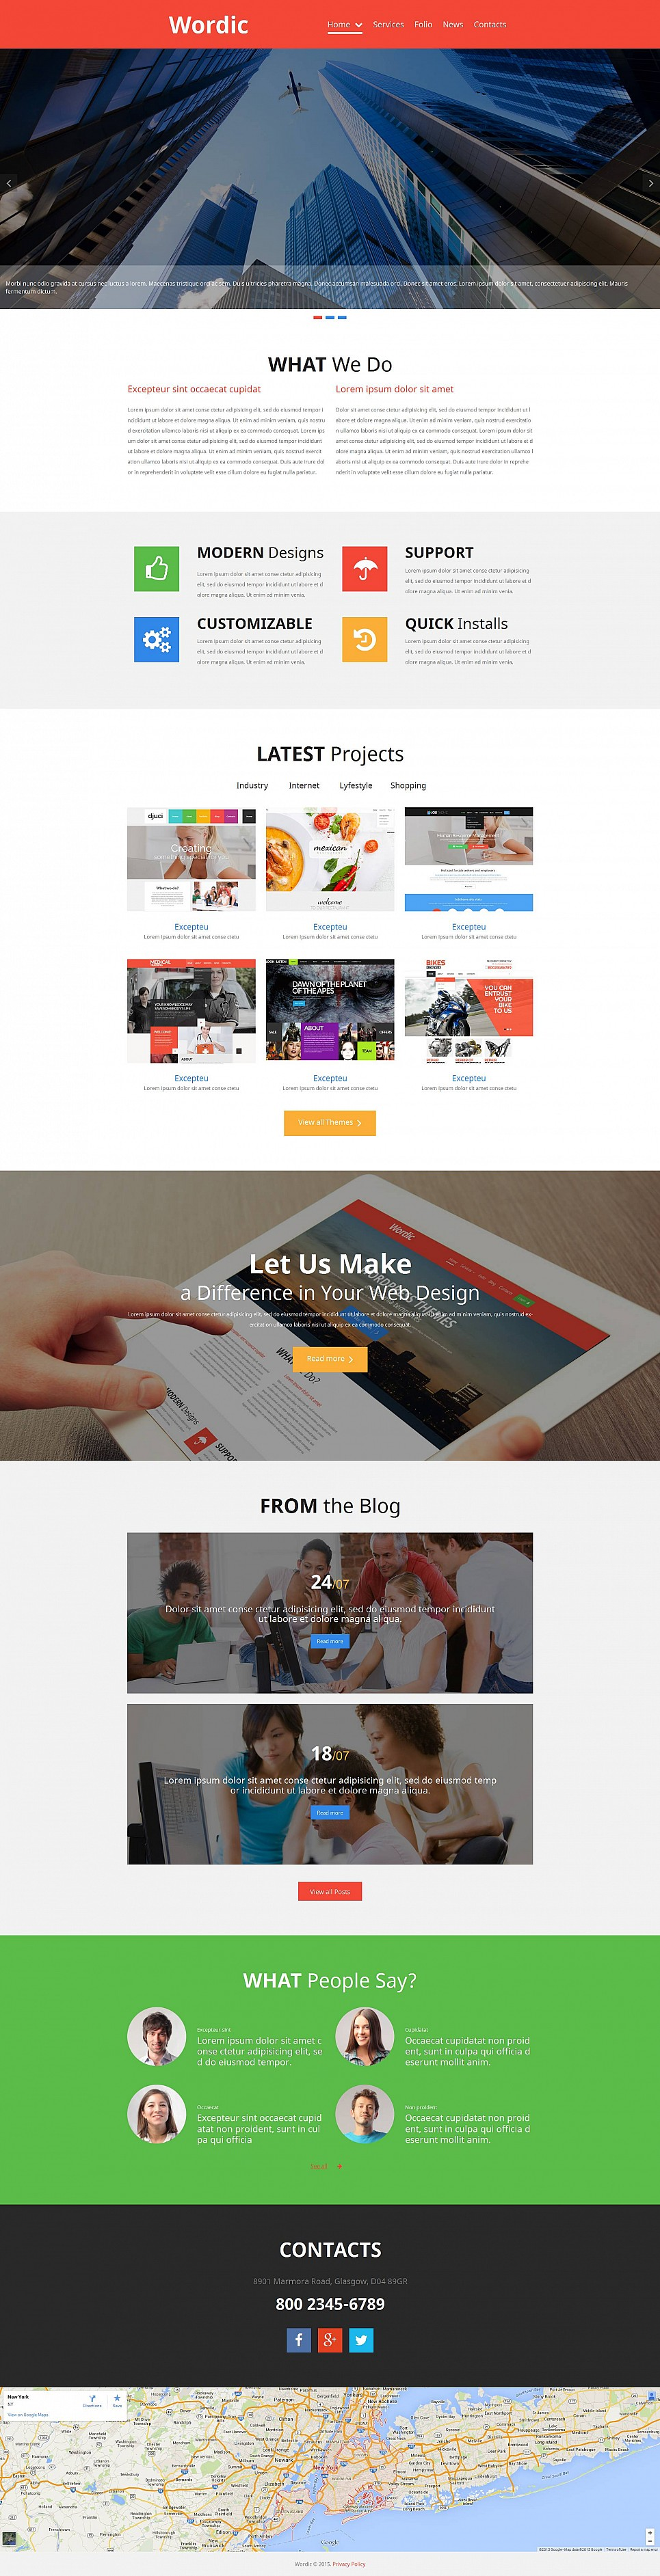 Web Design Company Theme - image